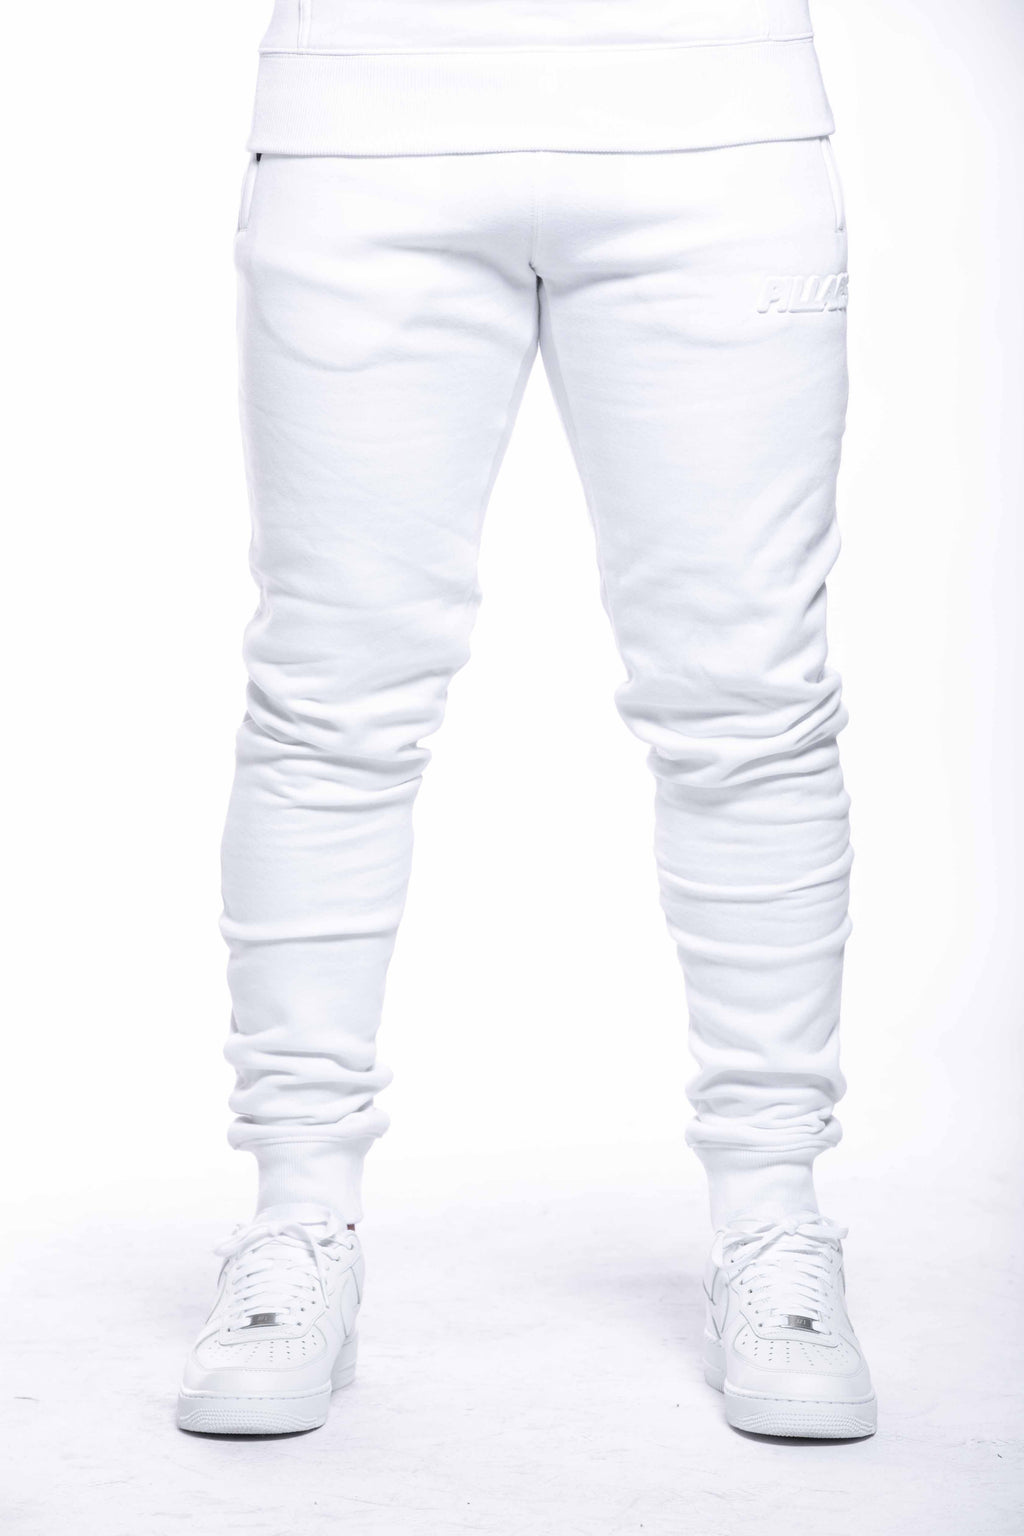 EMBOSSED LOGO PANT | WHITE